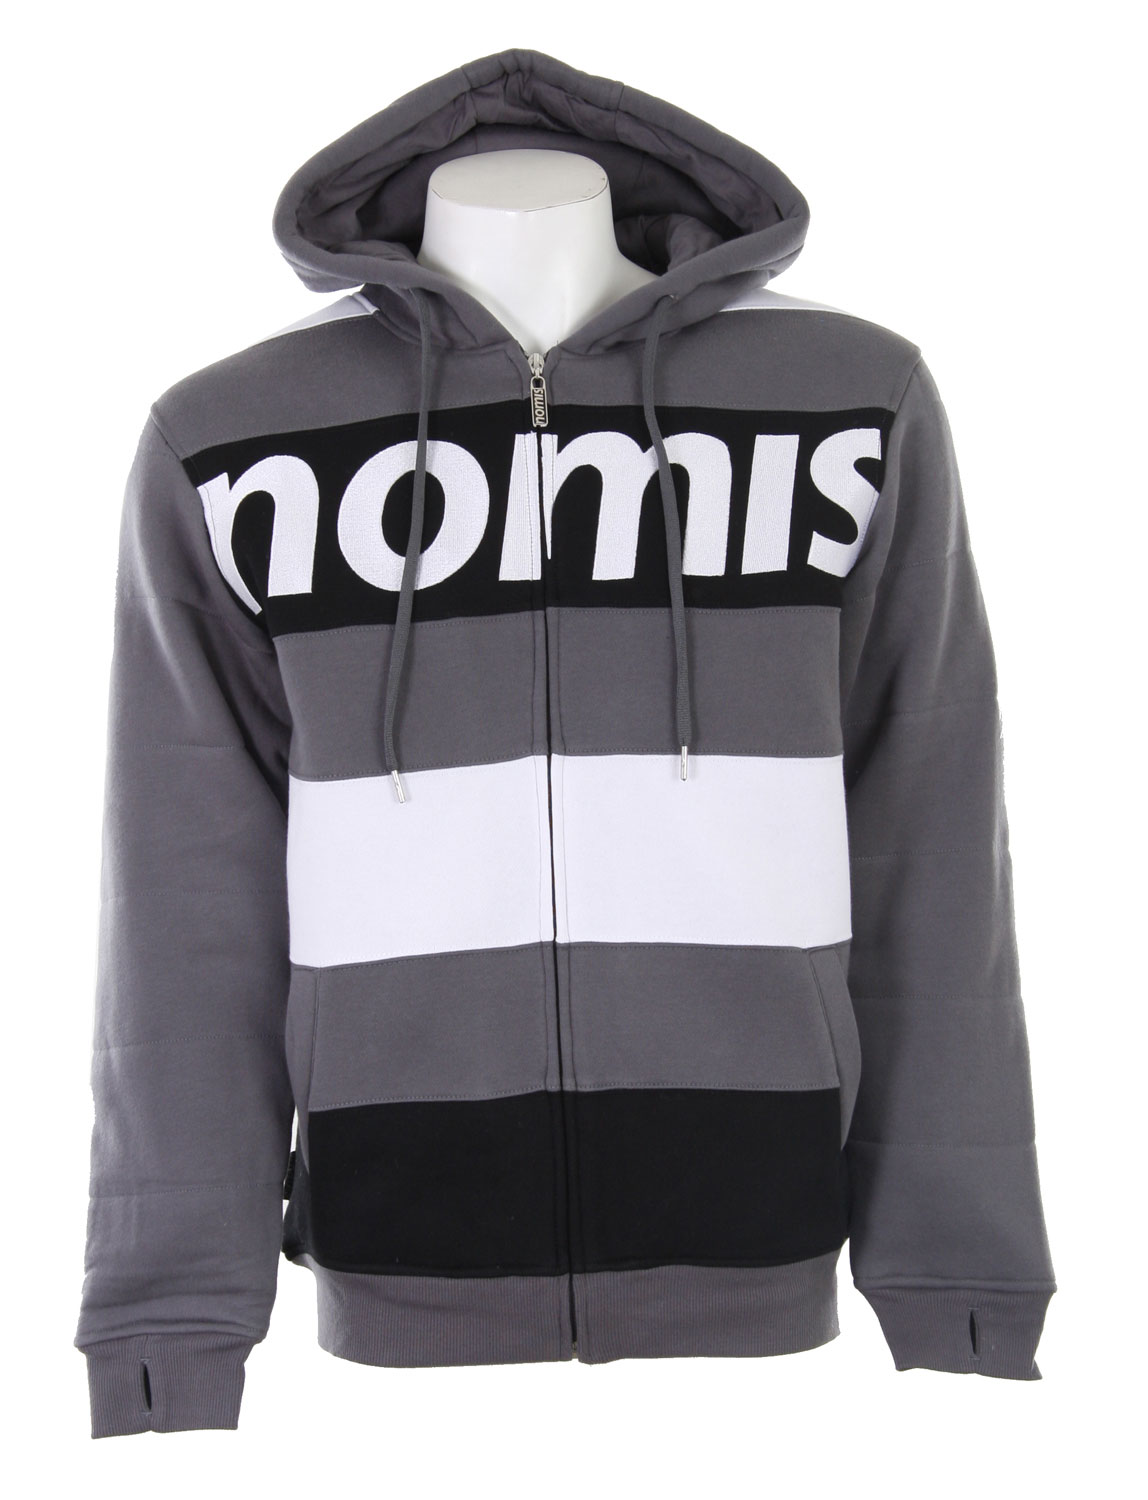 Looking for something that will keep you warm underneath your winter jacket? Sometimes the weather is just completely ruthless and you need to add some layers to your winter set up. Well a great way to add a ton of warmth to your outfit and still look great is the Nomis Tony II Hoodie. It's a quality made hoodie that has some weight to it, so it has the ability to keep you warm. The design is also great, it's a simple horizontal stripe design that gives it a slimming effect. The Nomis logo across the chest really brings this whole hoodie all together and gives it an all around great look.Key Features of the Nomis Tony II Hoodie Charcoal: 80% Cotton/20% Poly - 270 gm - $28.76